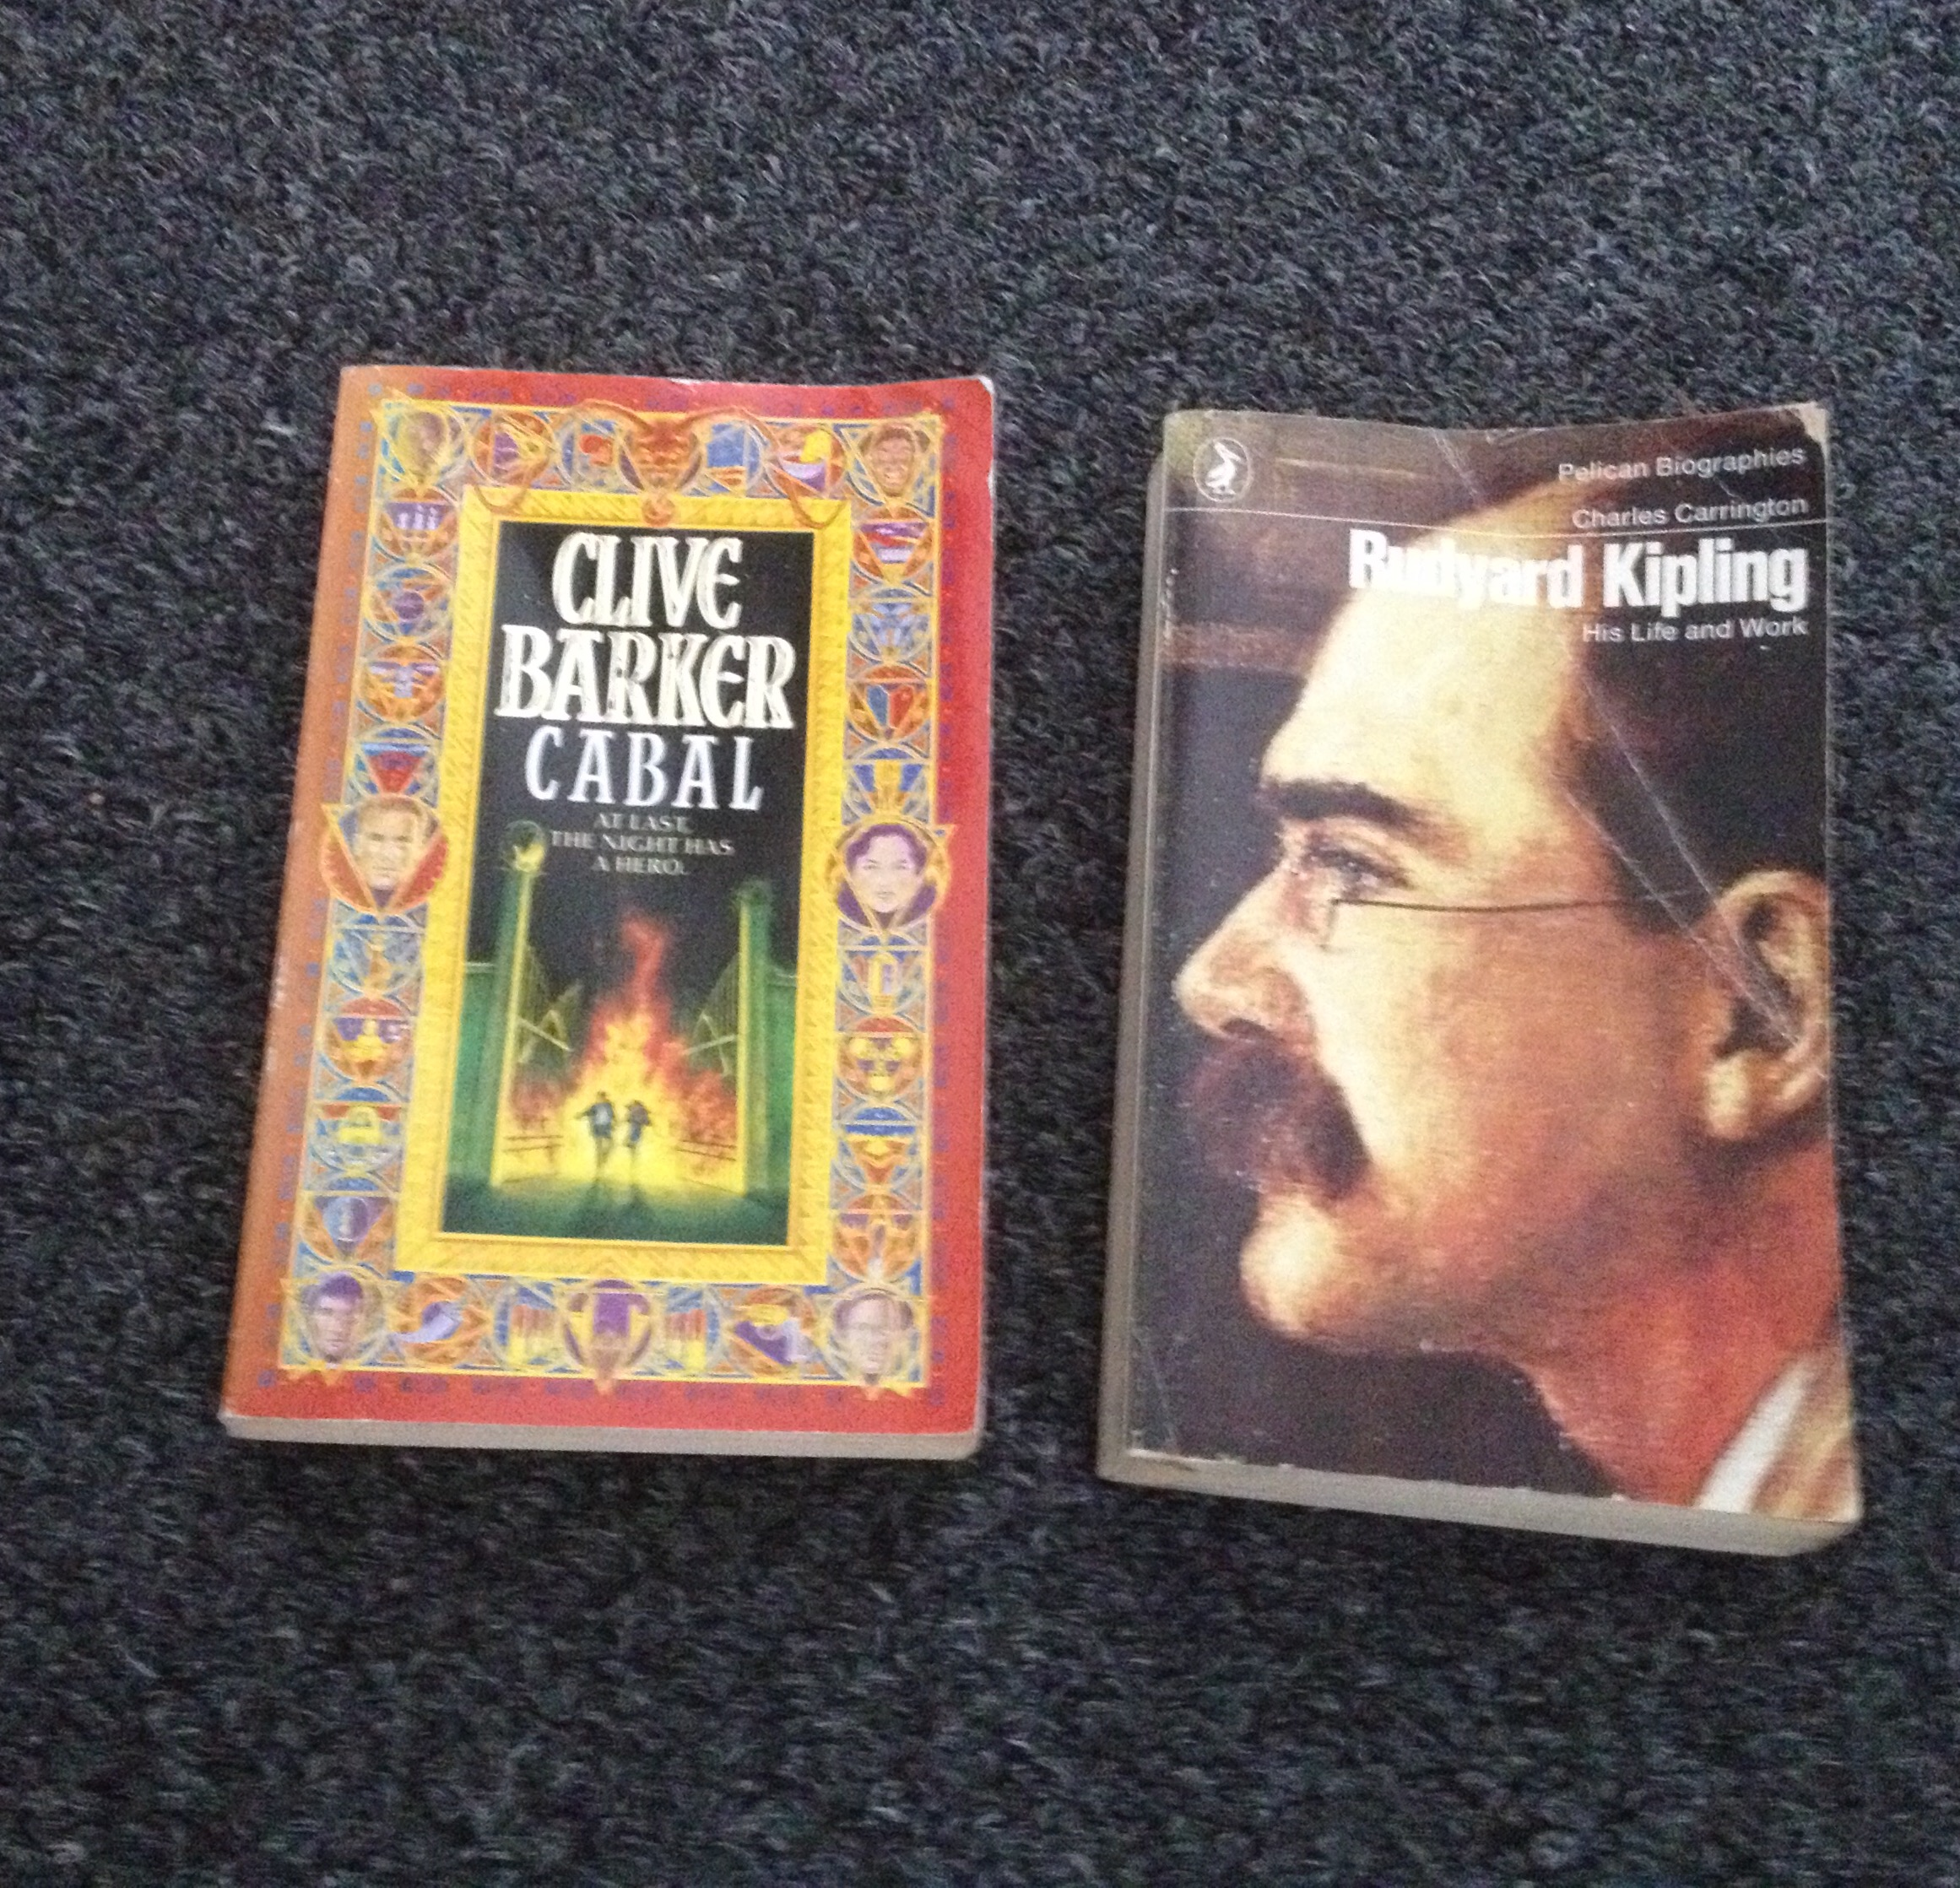 Have you read any of these books?